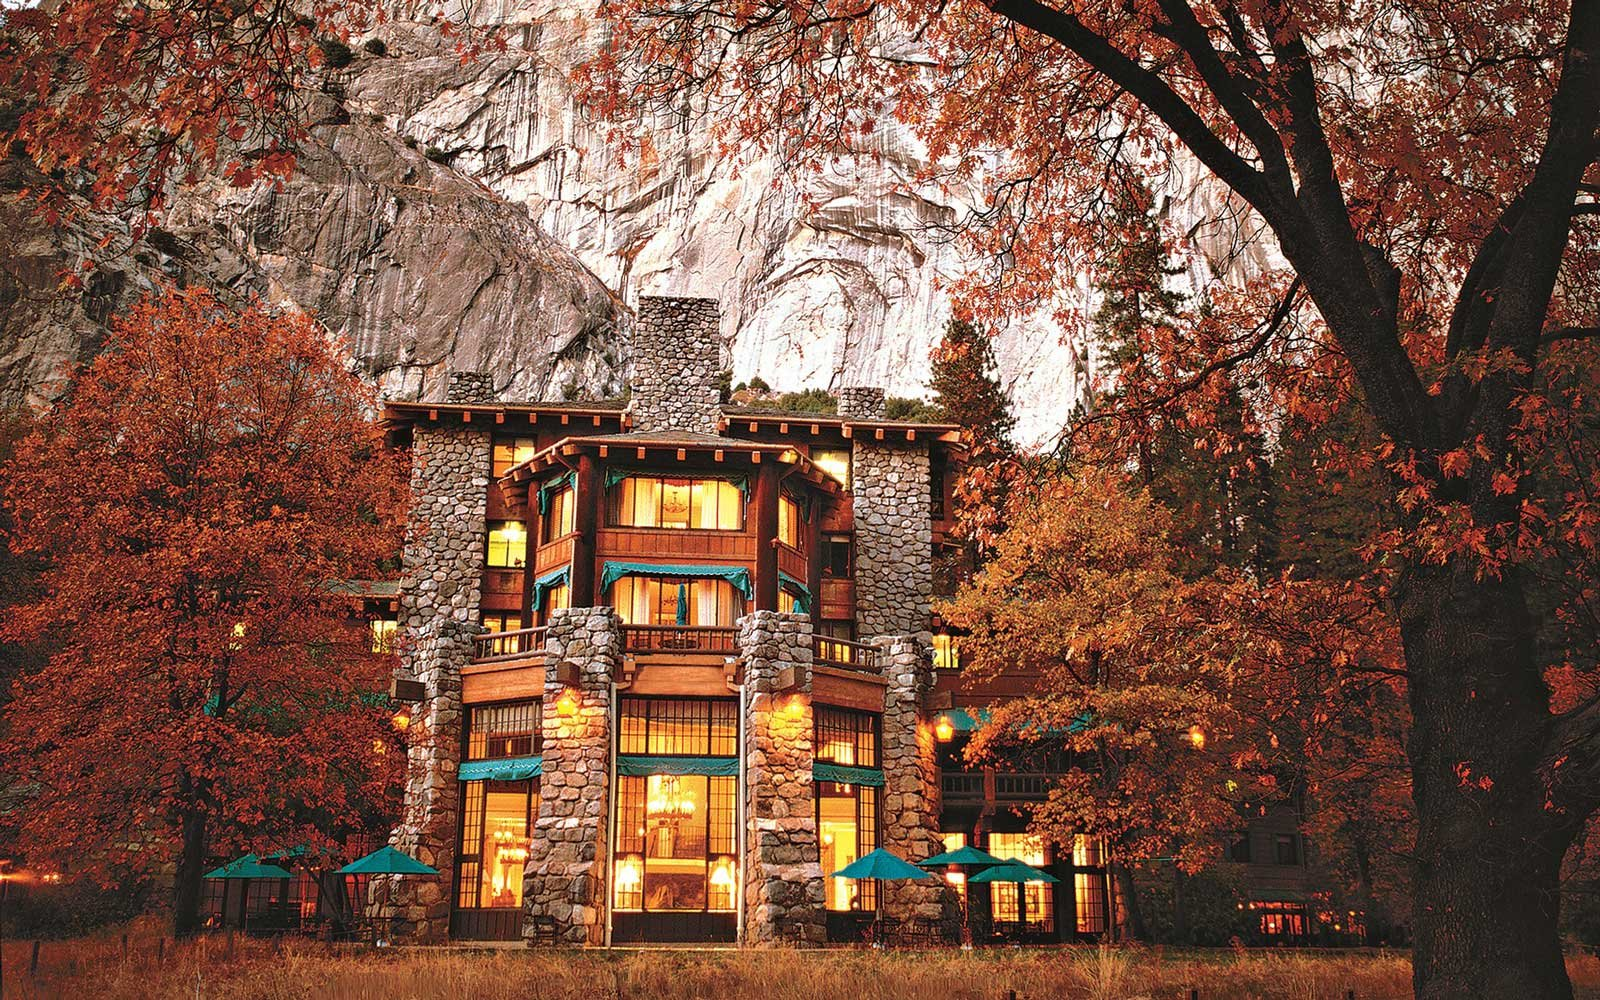 The Majestic Yosemite Hotel — Yosemite National Park, California